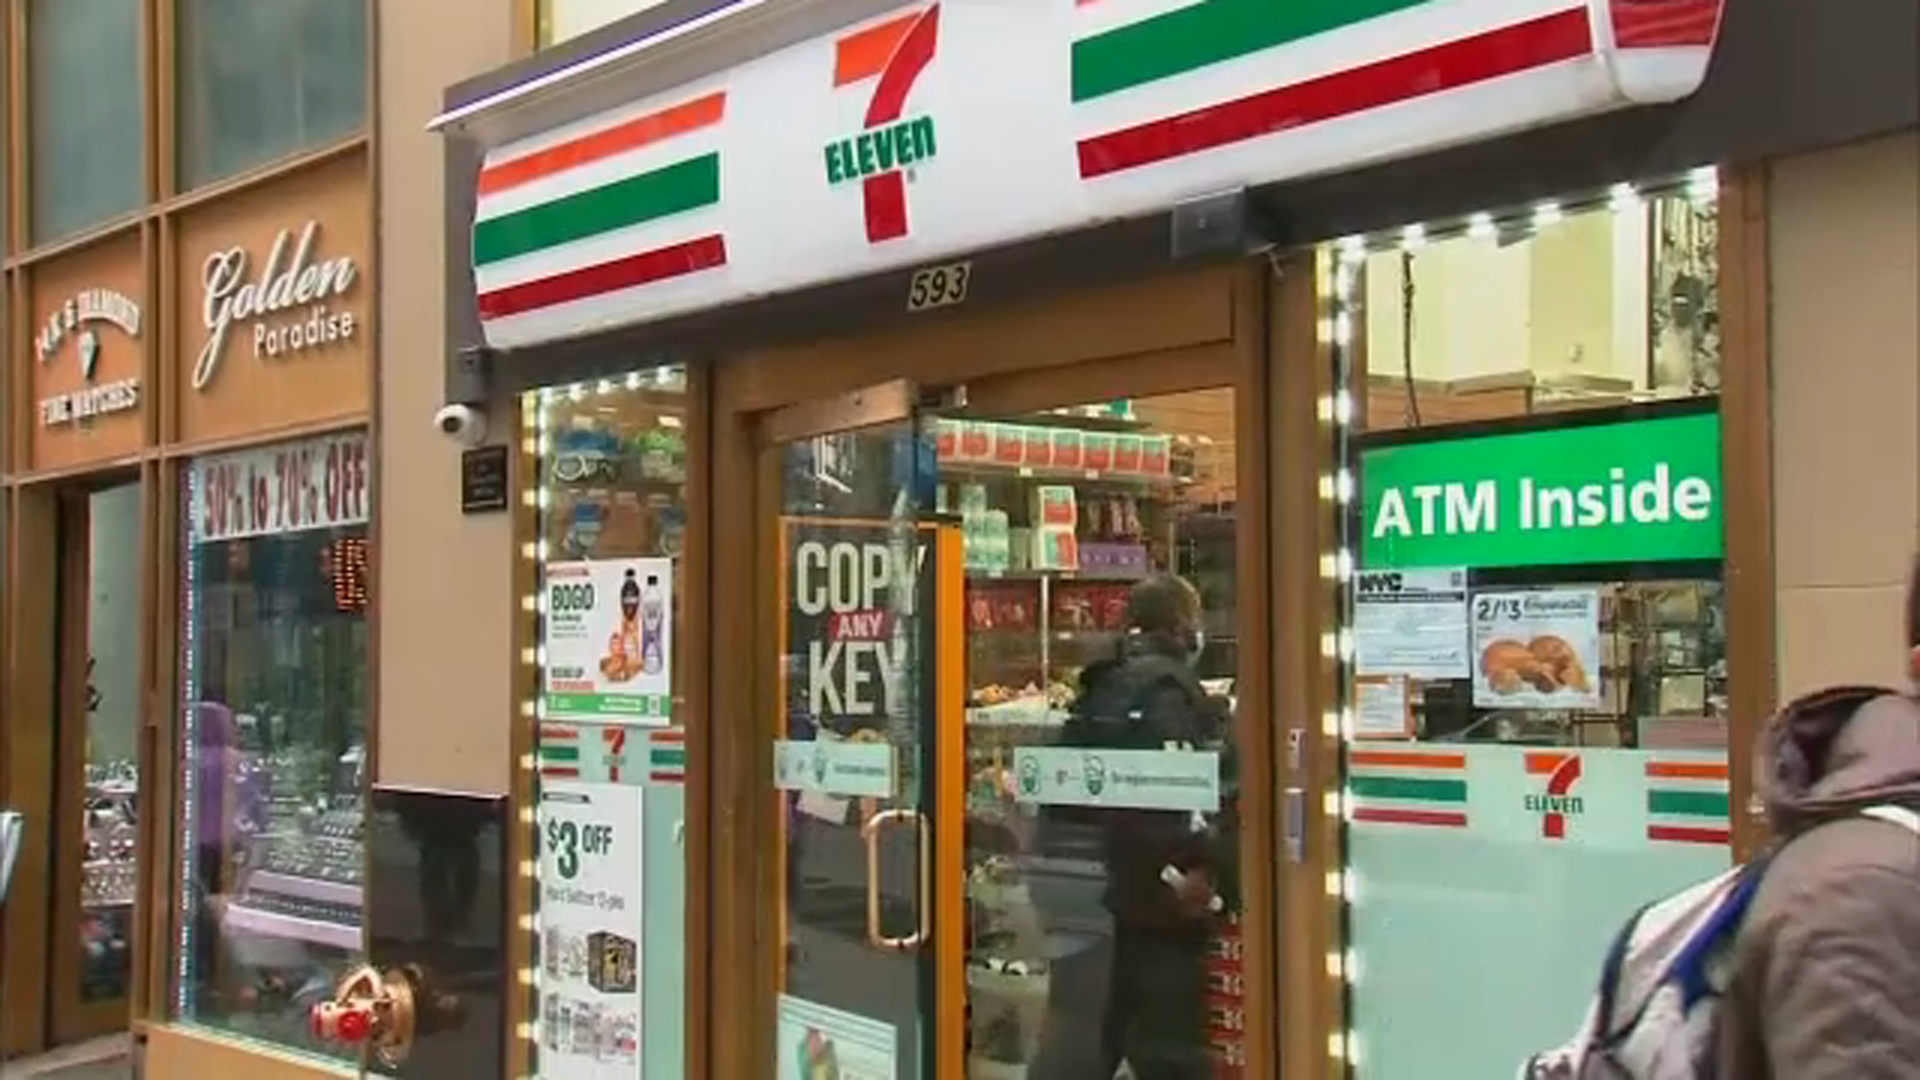 www.yahoo.com: Asian store worker punched in face; hate crime investigation underway